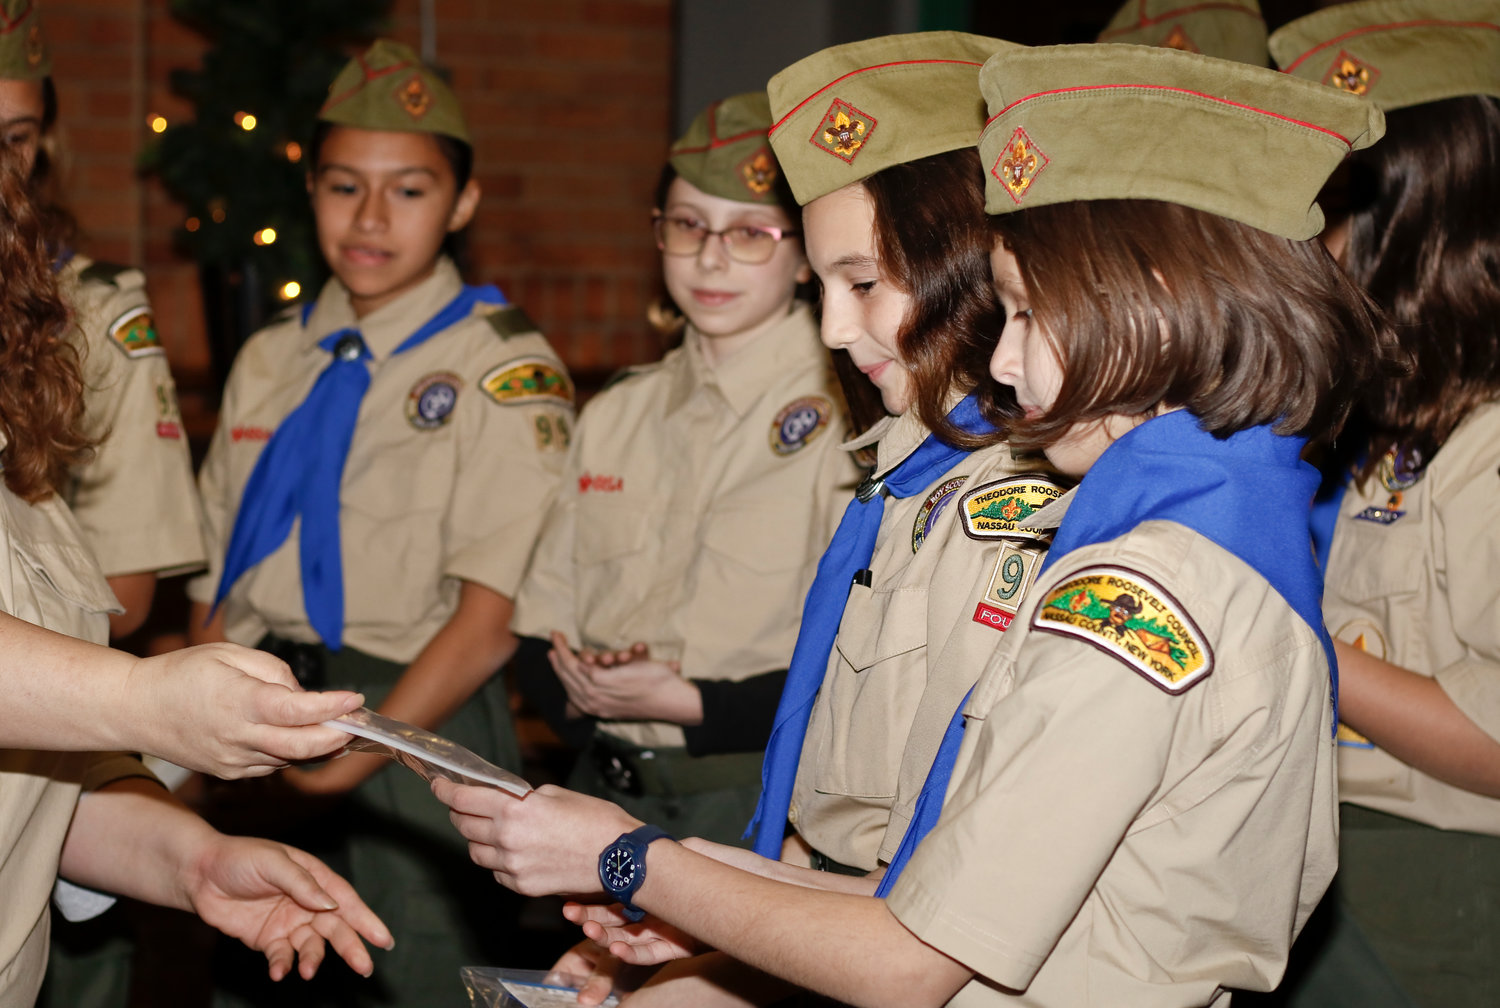 First ever Arrow of Light recipients Nina Munafo, right, and Isabella Lebron bridged over during the Court of Honor ceremony and became full fledged scouts.